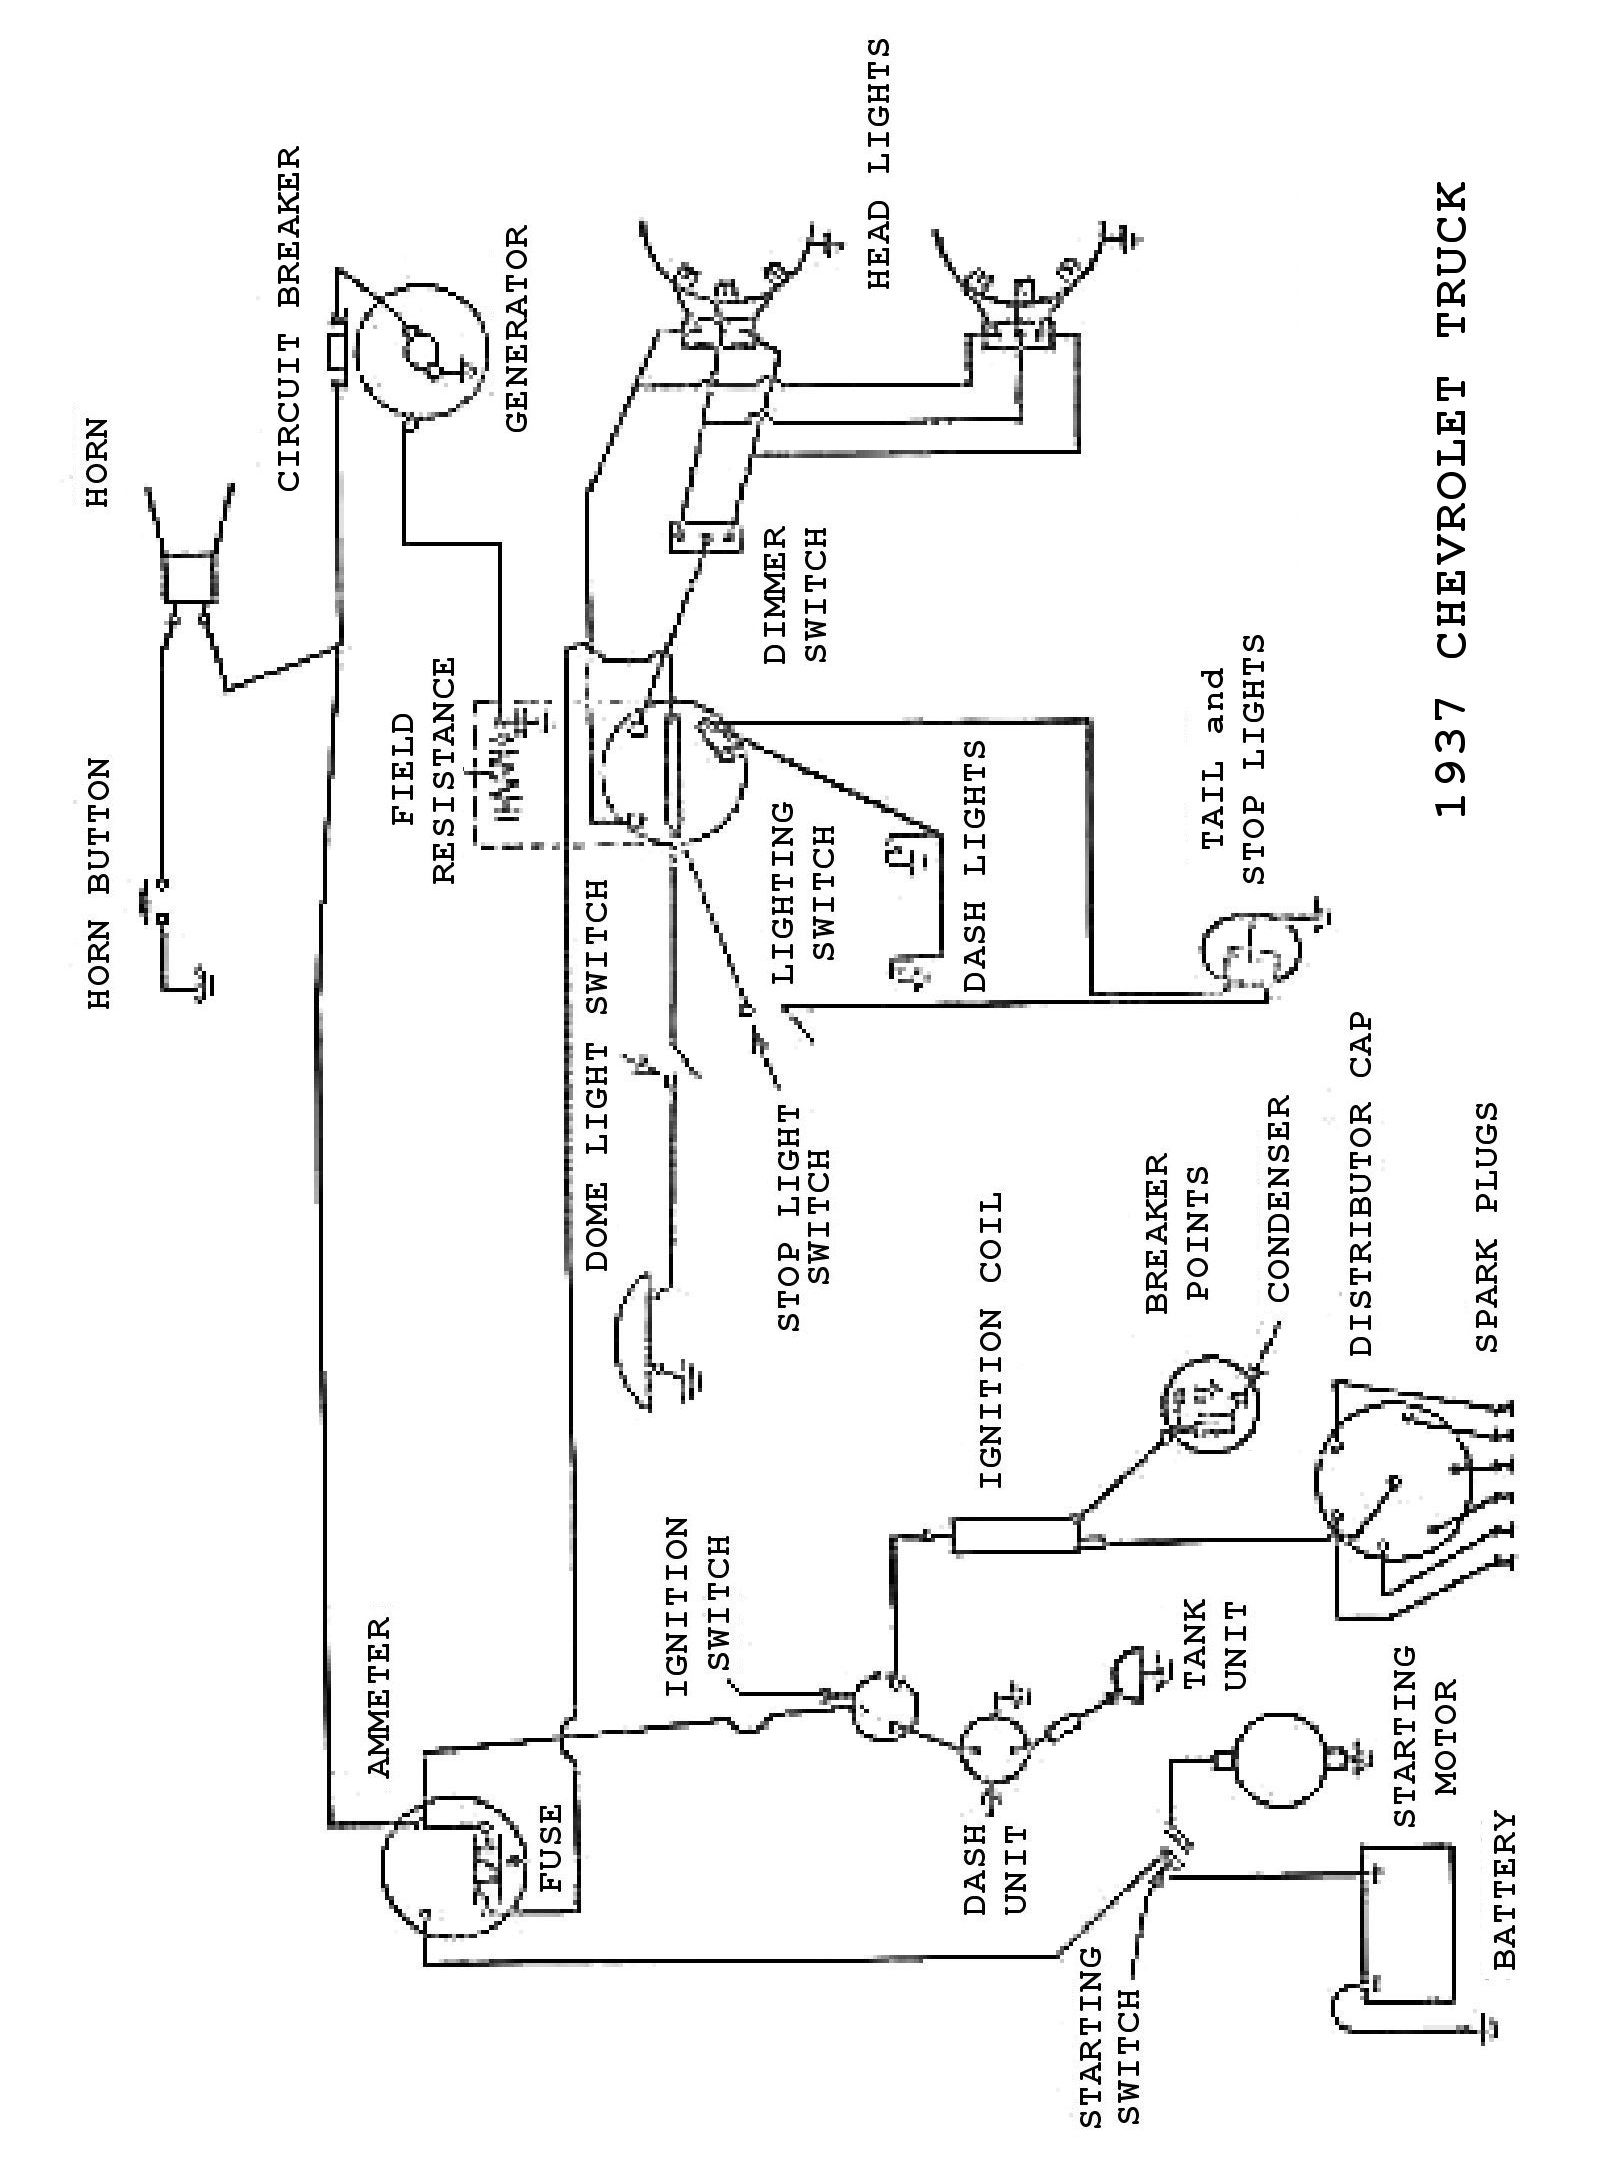 truck engine schematics schematic diagram38 chevy truck wire diagram wiring block diagram truck diagram 38 chevy truck wire diagram wiring